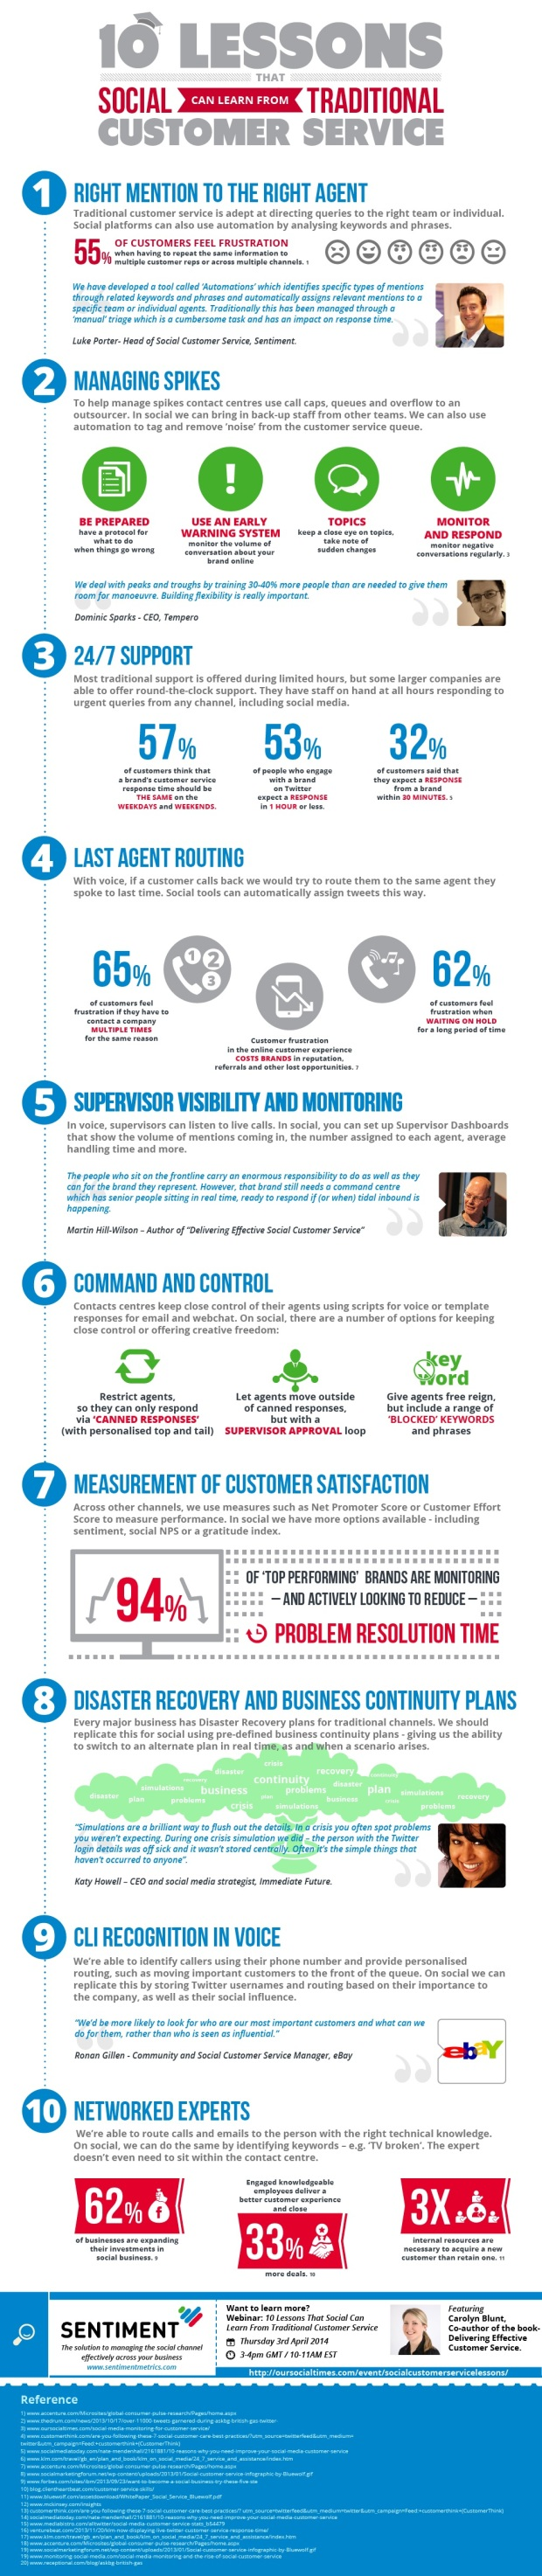 10 Important Social Media Lessons for Improved Customer Service Management [INFOGRAPHIC]